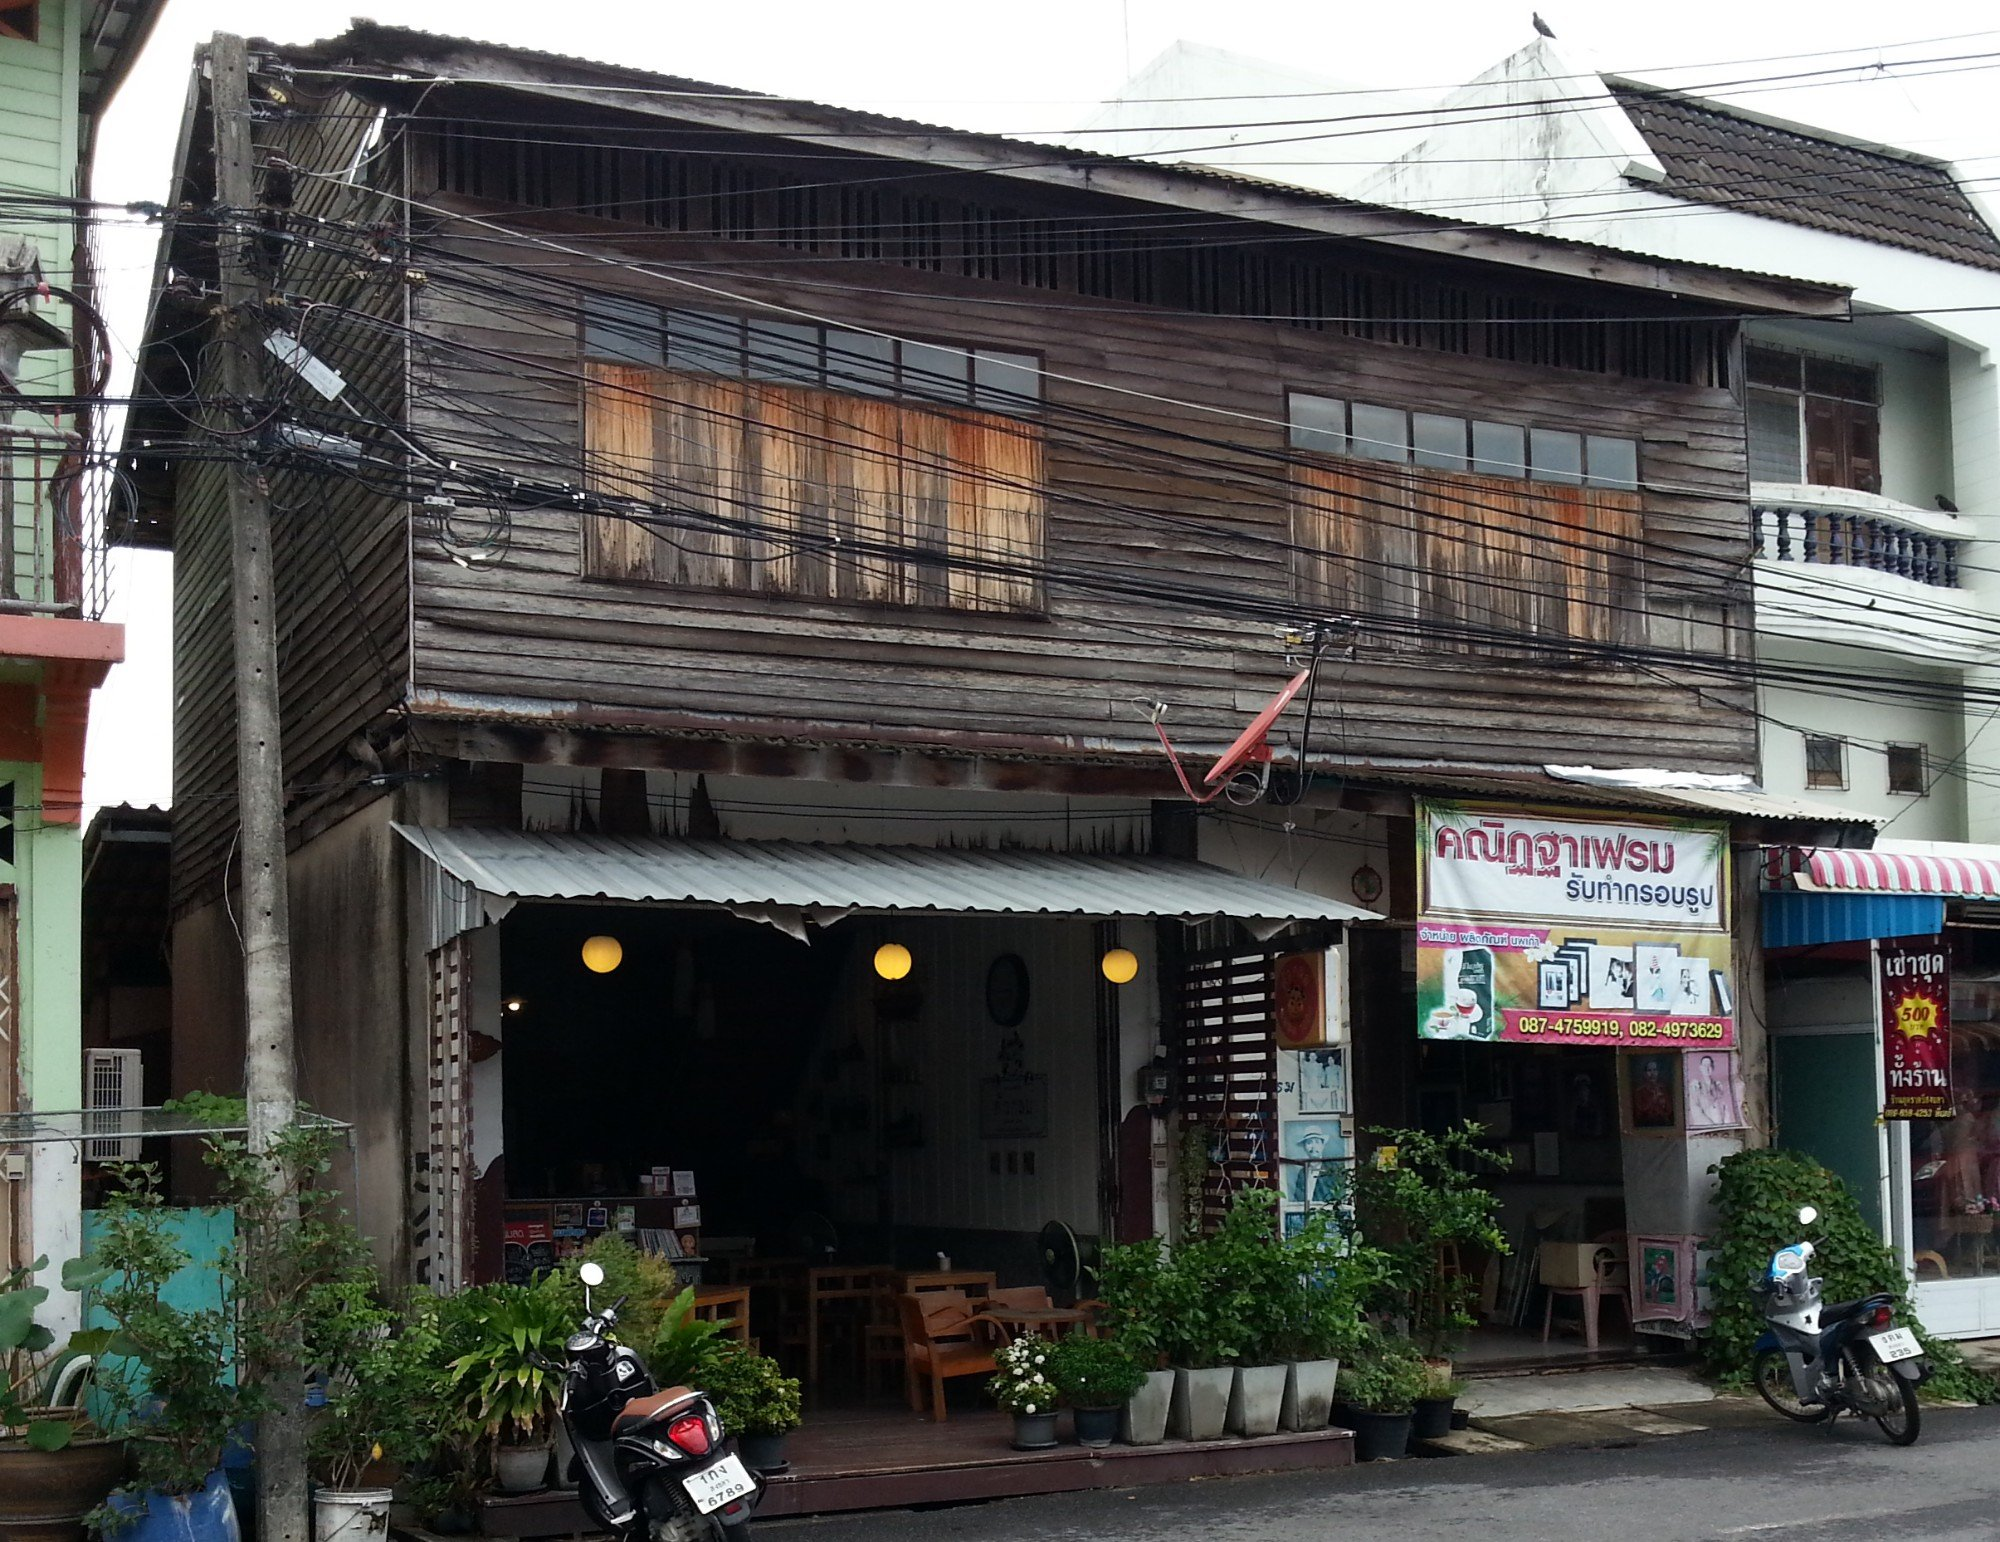 Chinese style shop house in Songkhla Old Town